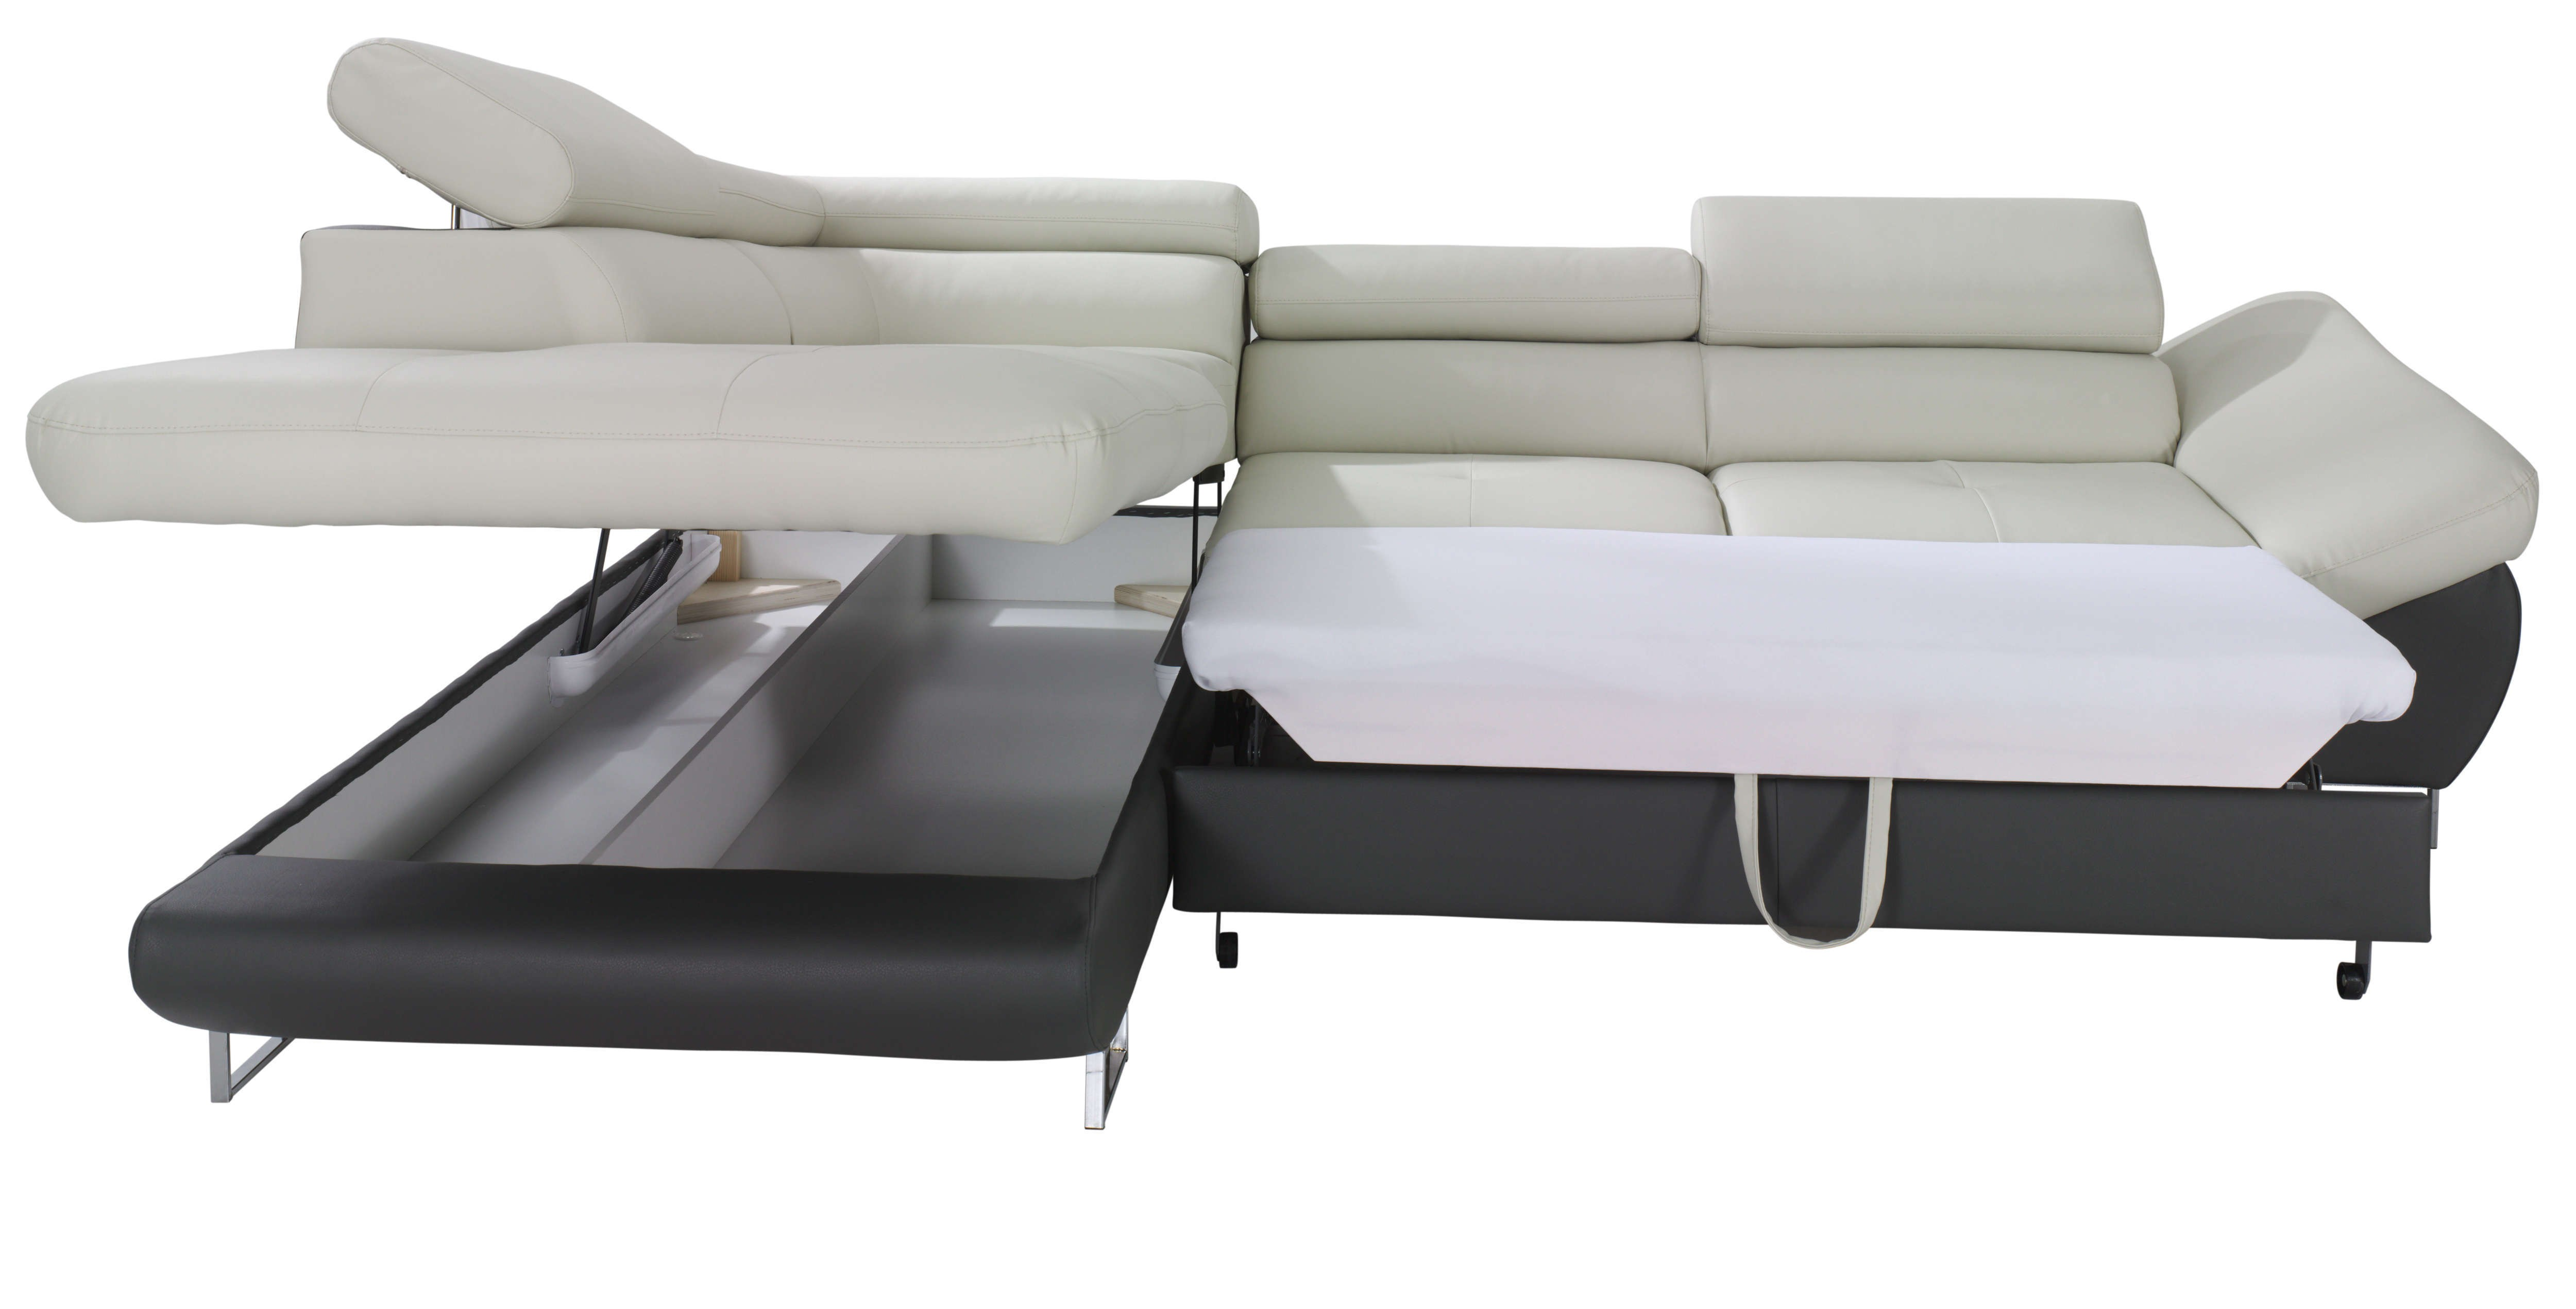 contemporary gray tufted sectional sofa model-Fresh Gray Tufted Sectional sofa Photo